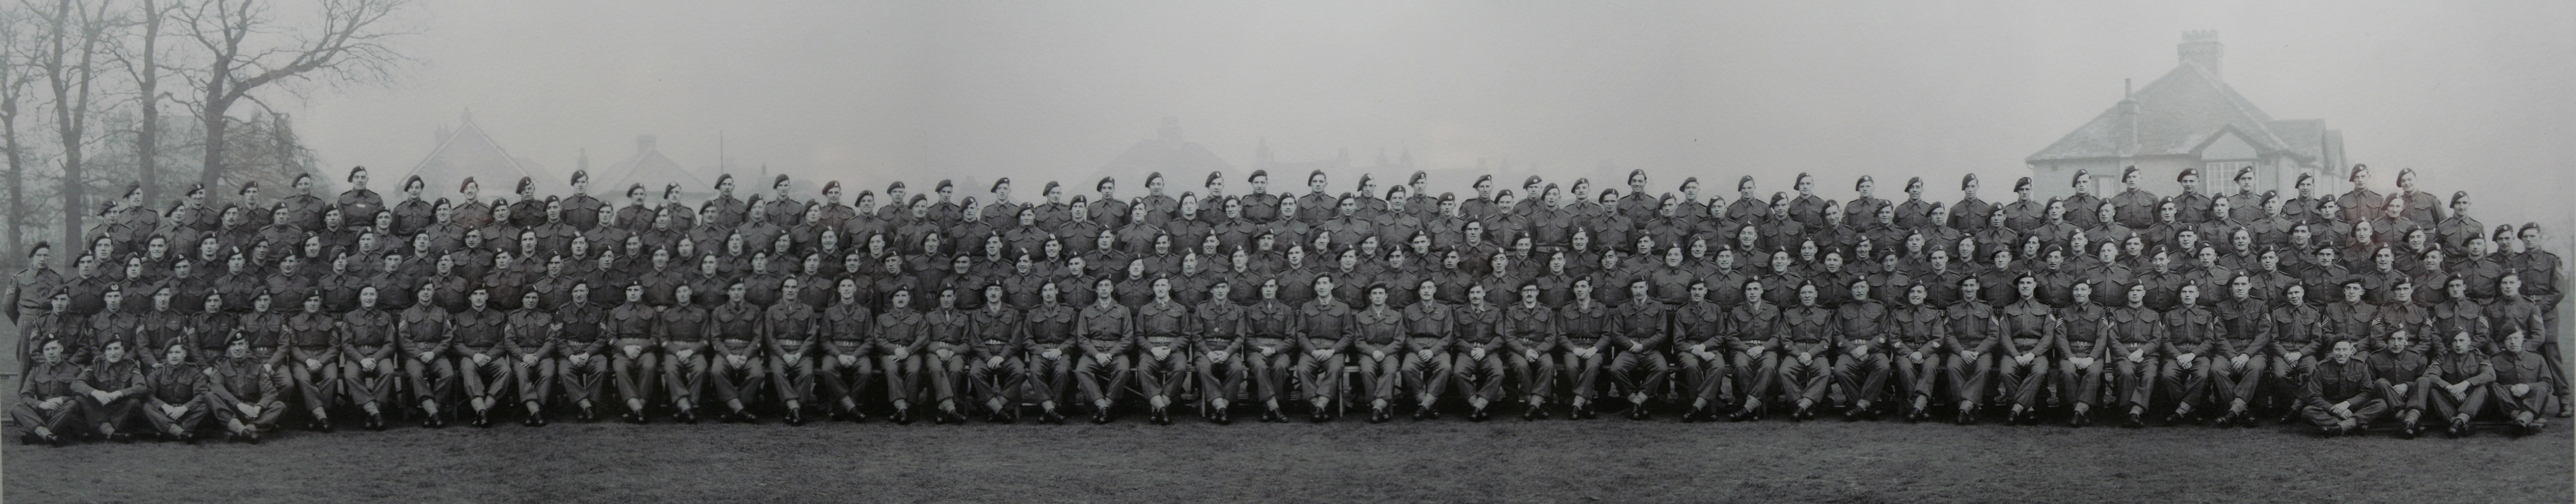 No.6 Commando panorama January 1945.